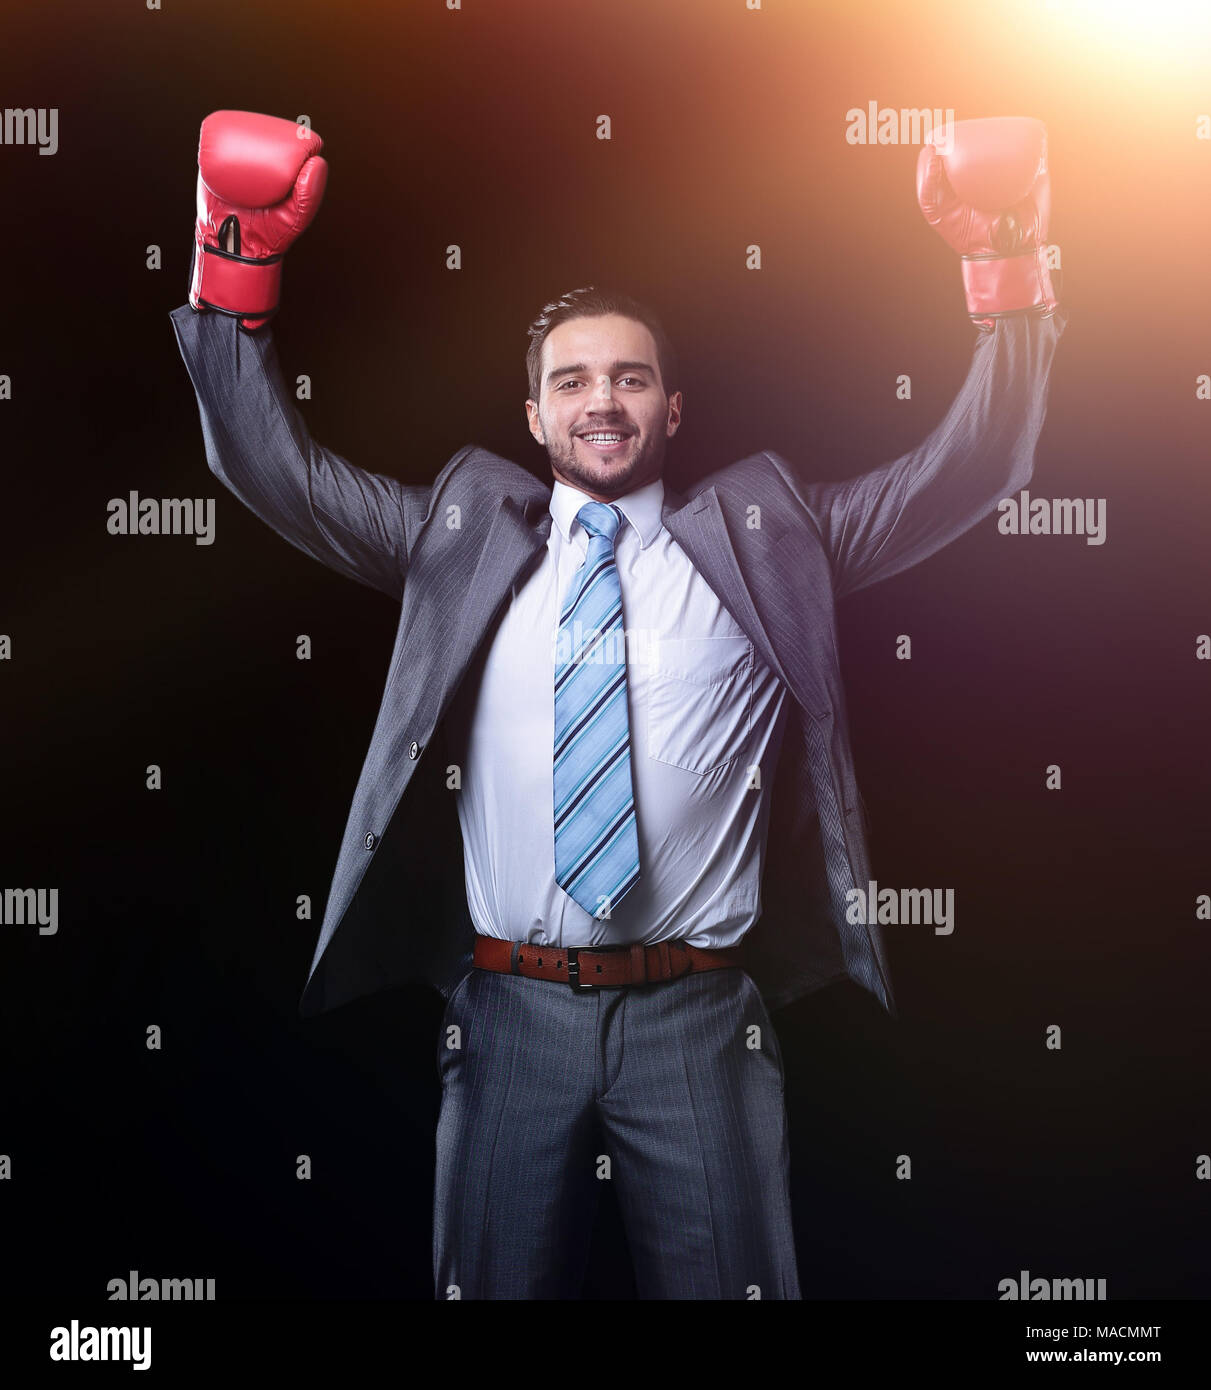 successful businessman in red Boxing gloves - Stock Image